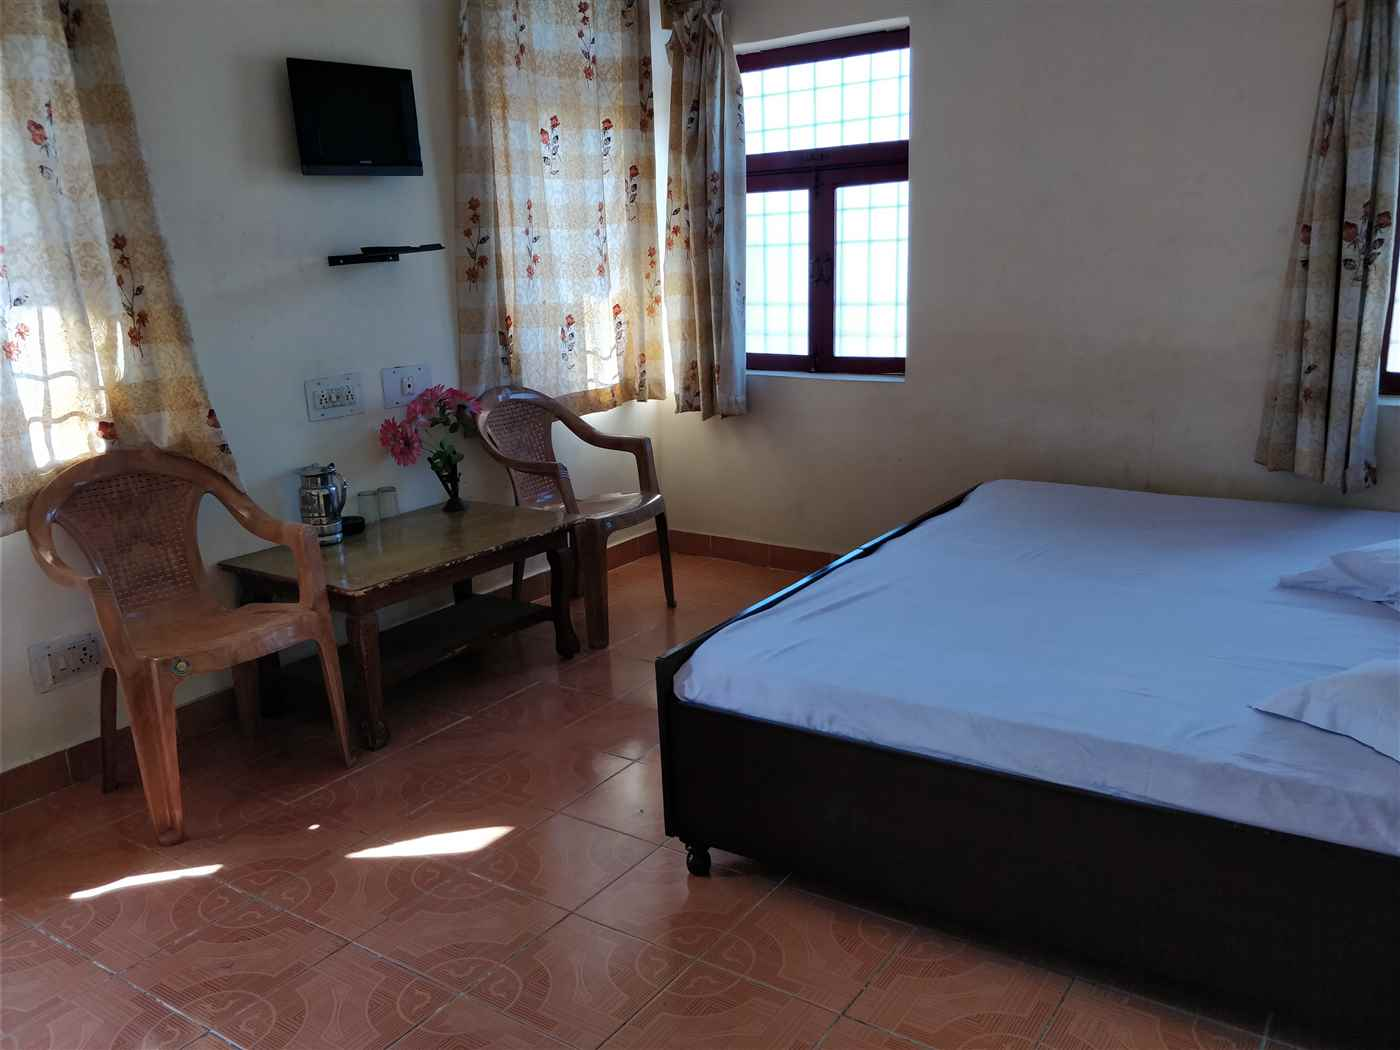 BEST GUEST HOUSE AT BIR BILLING @ 750/- ONLY